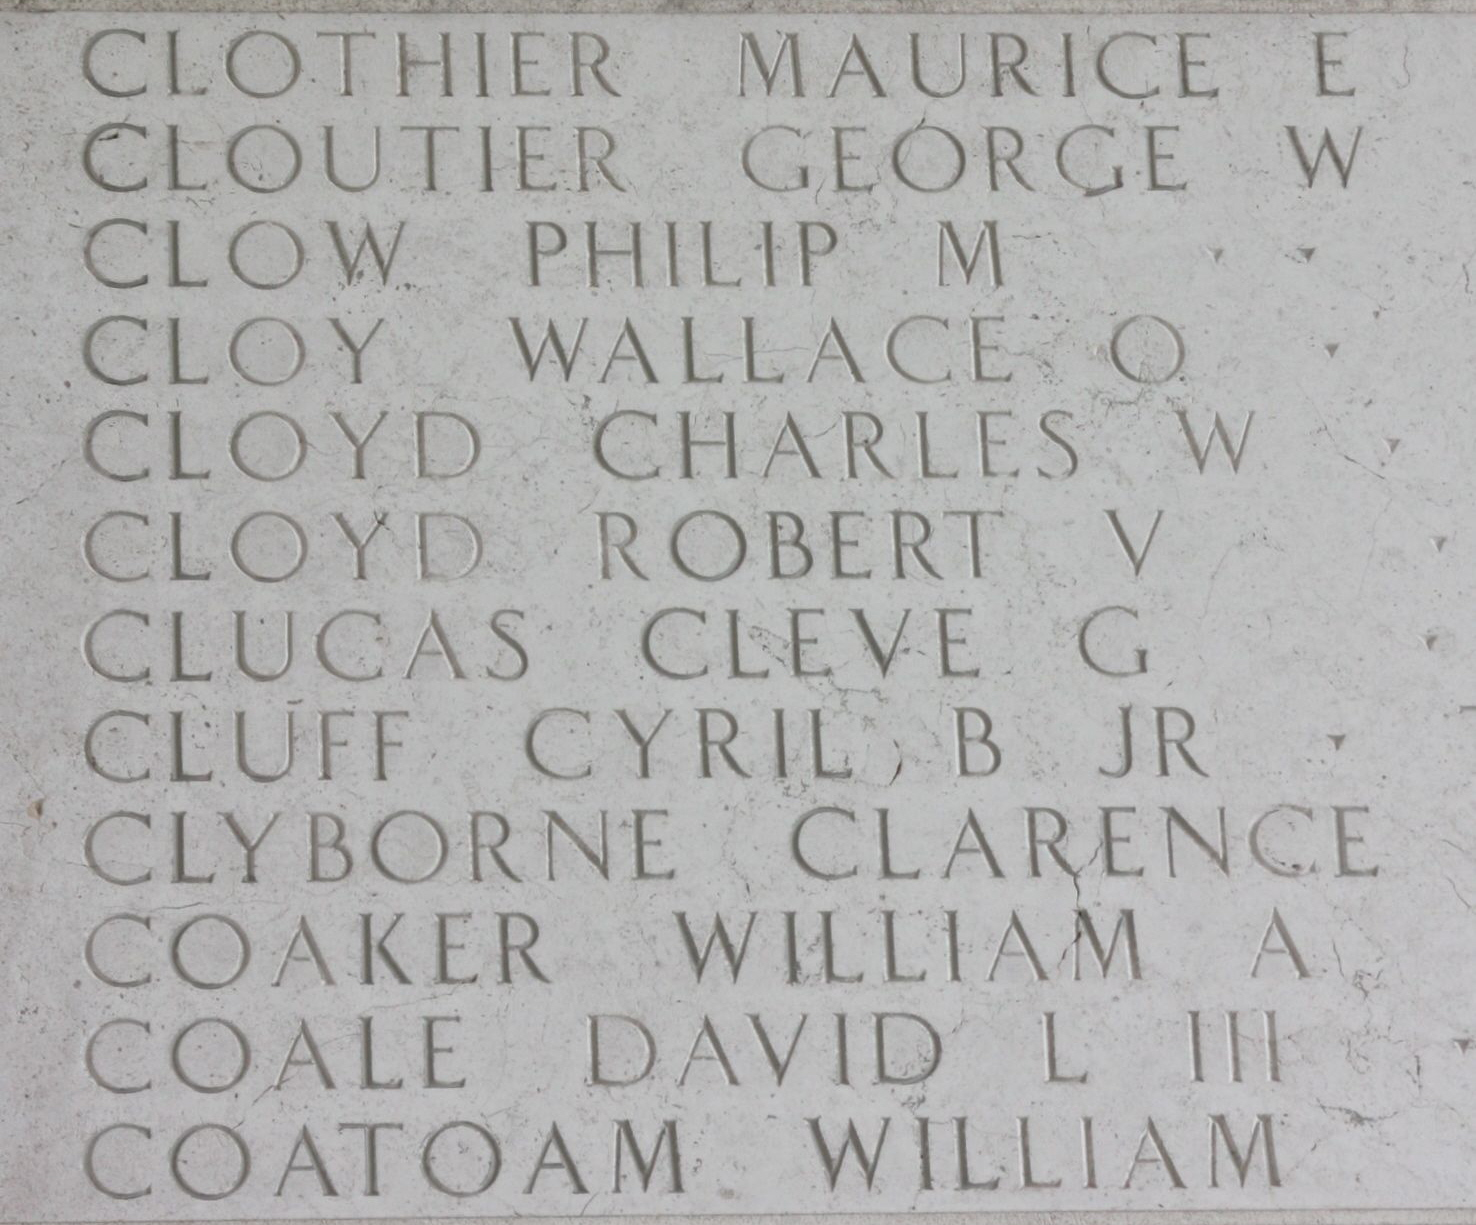 Sgt Charles William Cloyd